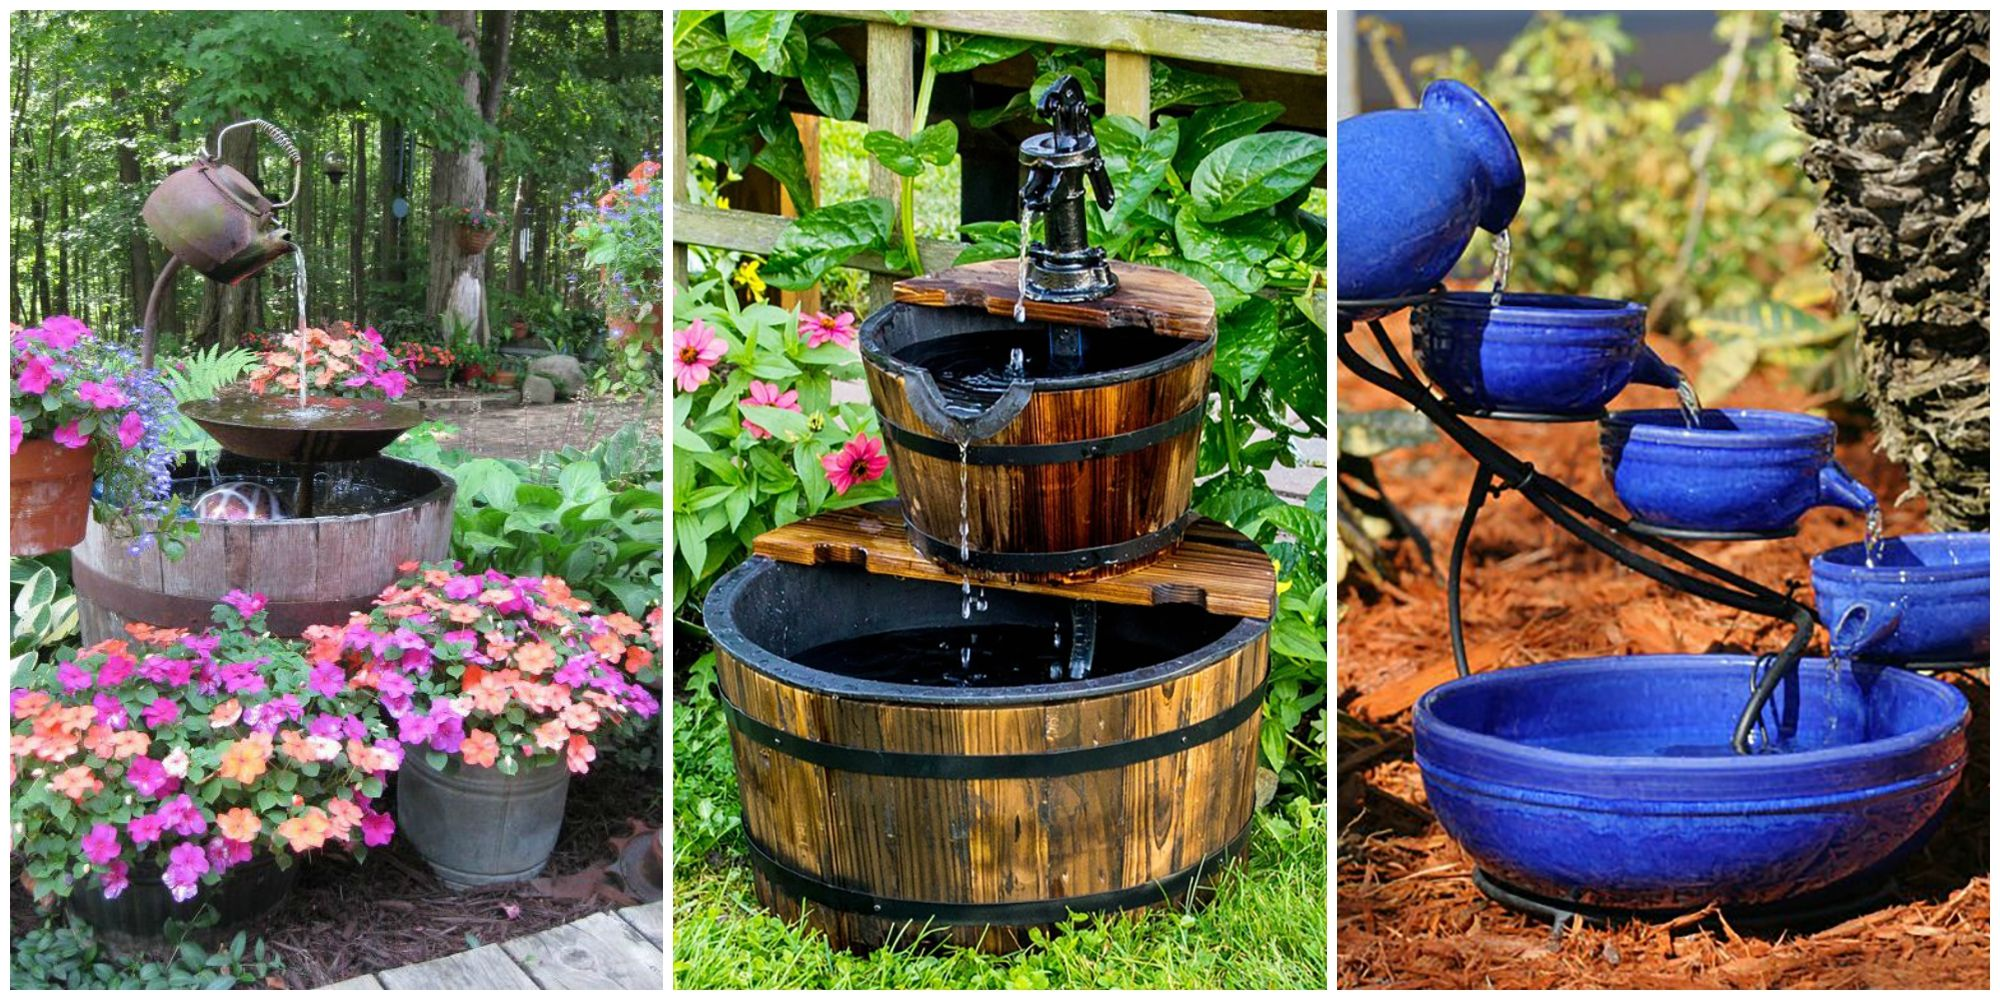 18 Outdoor Fountain Ideas How To Make a Garden Fountain for Your